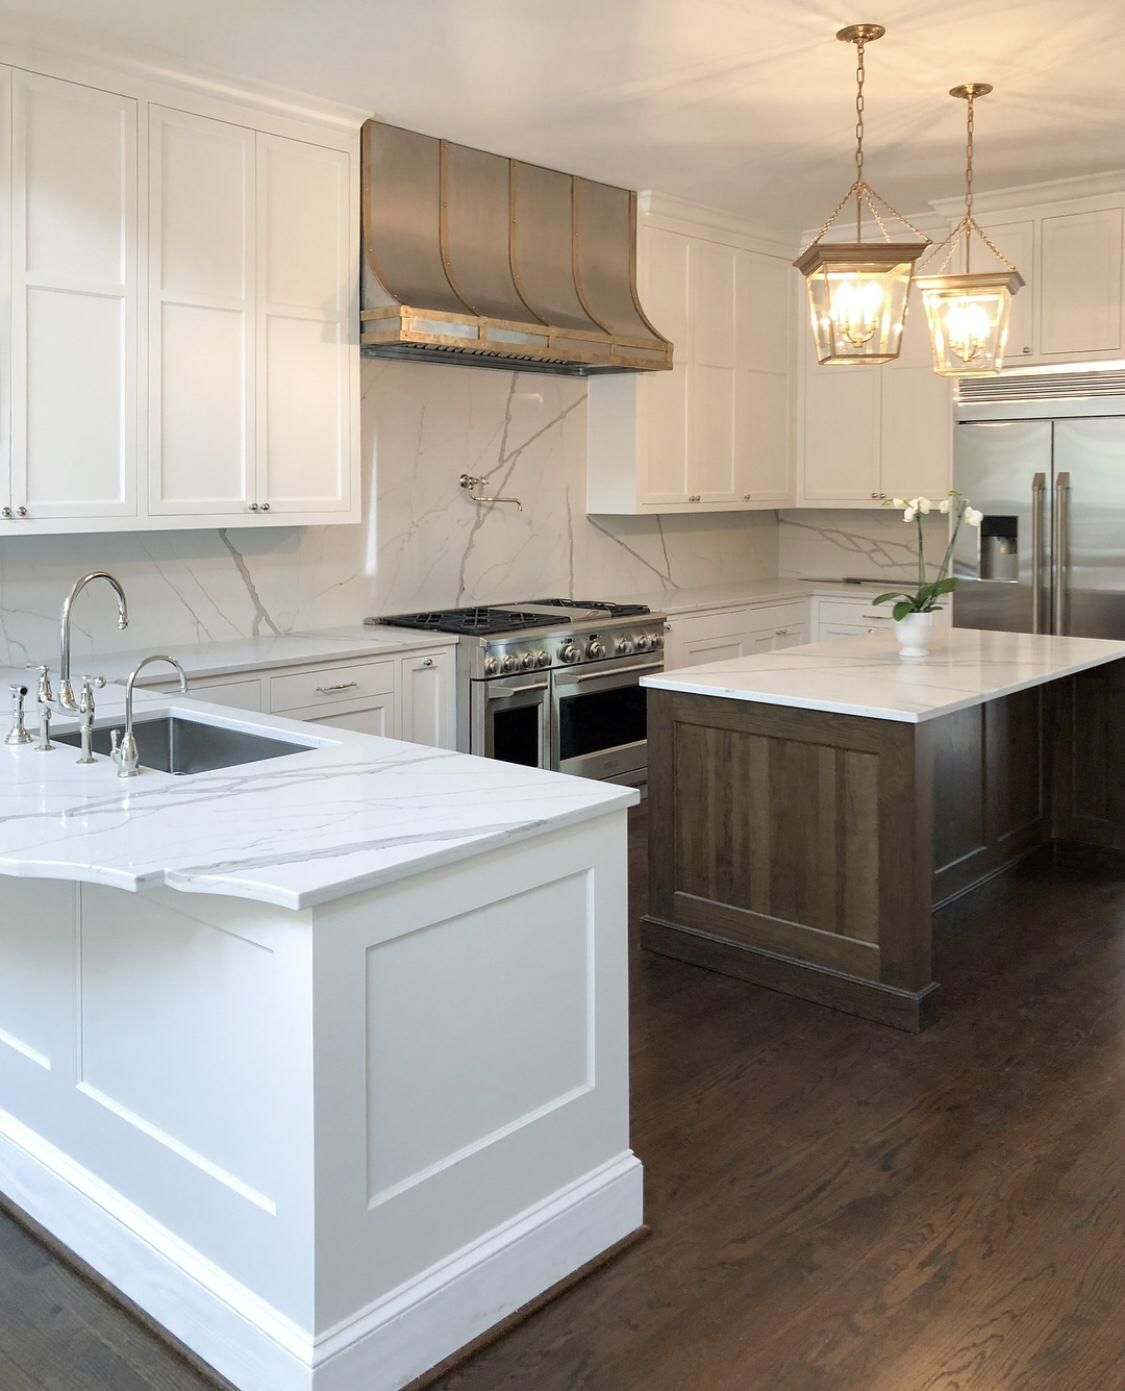 Love the stainless steel appliances and white